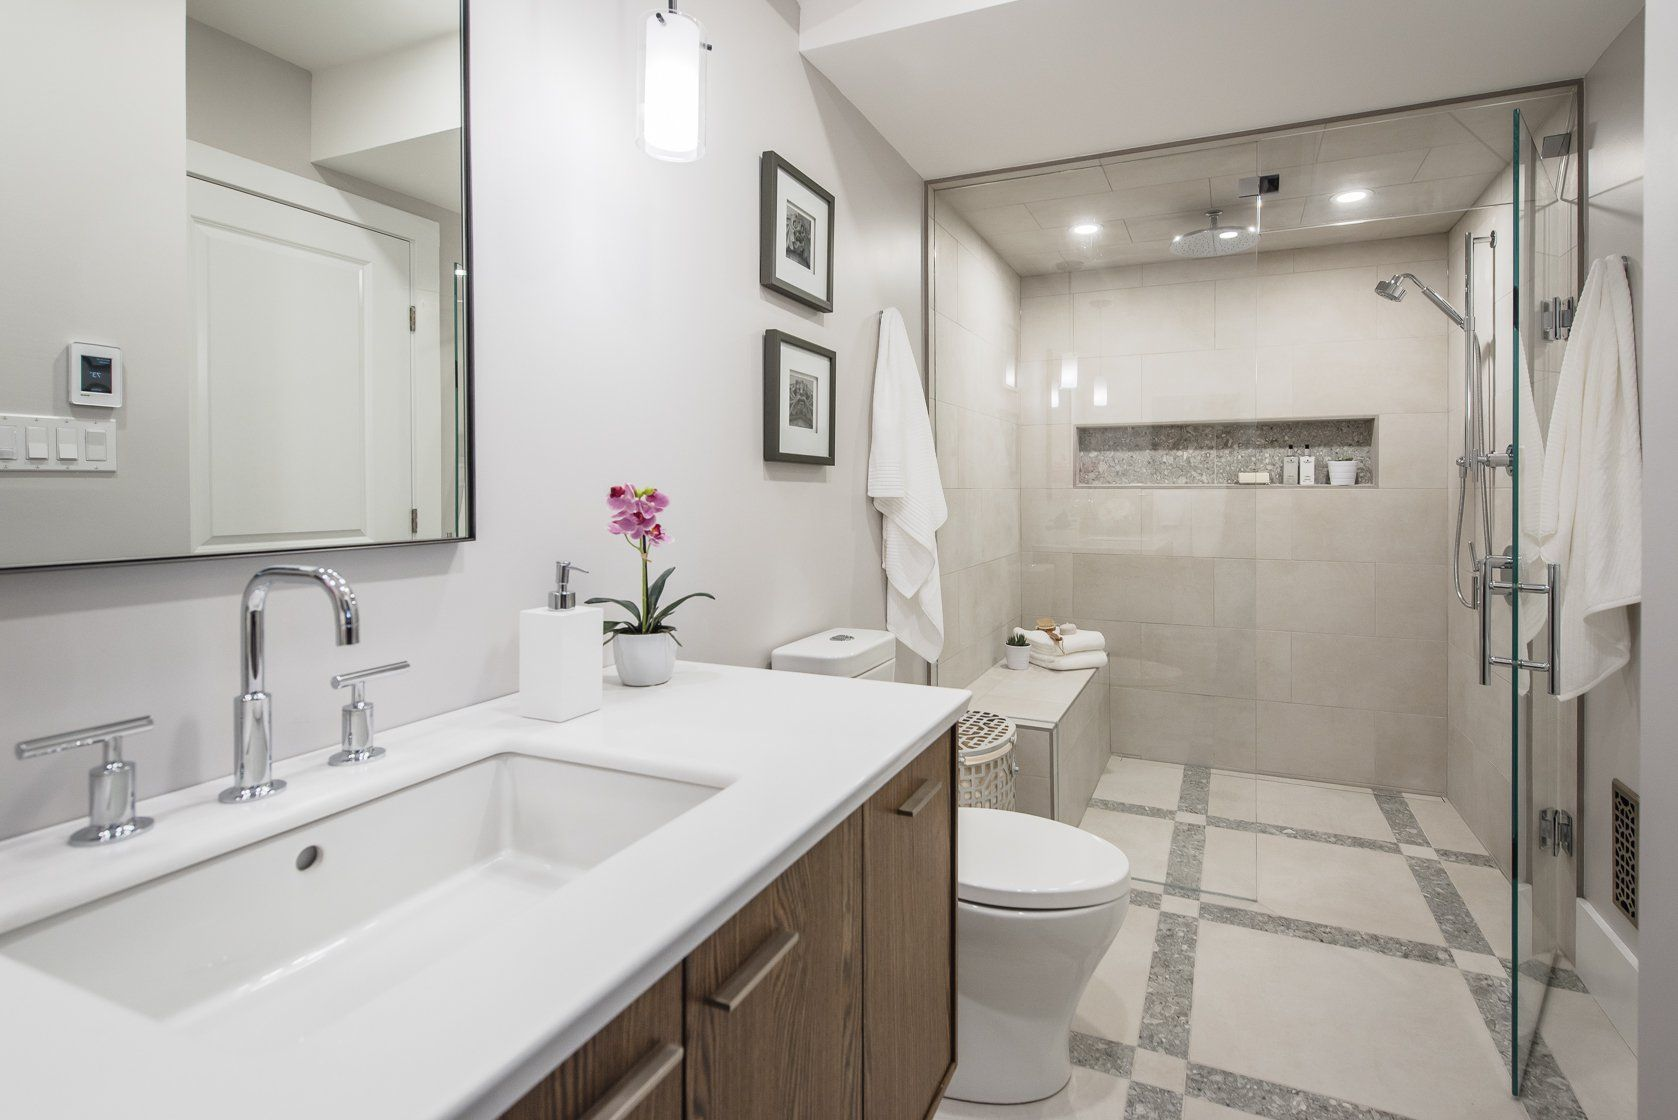 An HGTV Star Reveals the 6 Upgrades That Will Make Your Bathroom ...